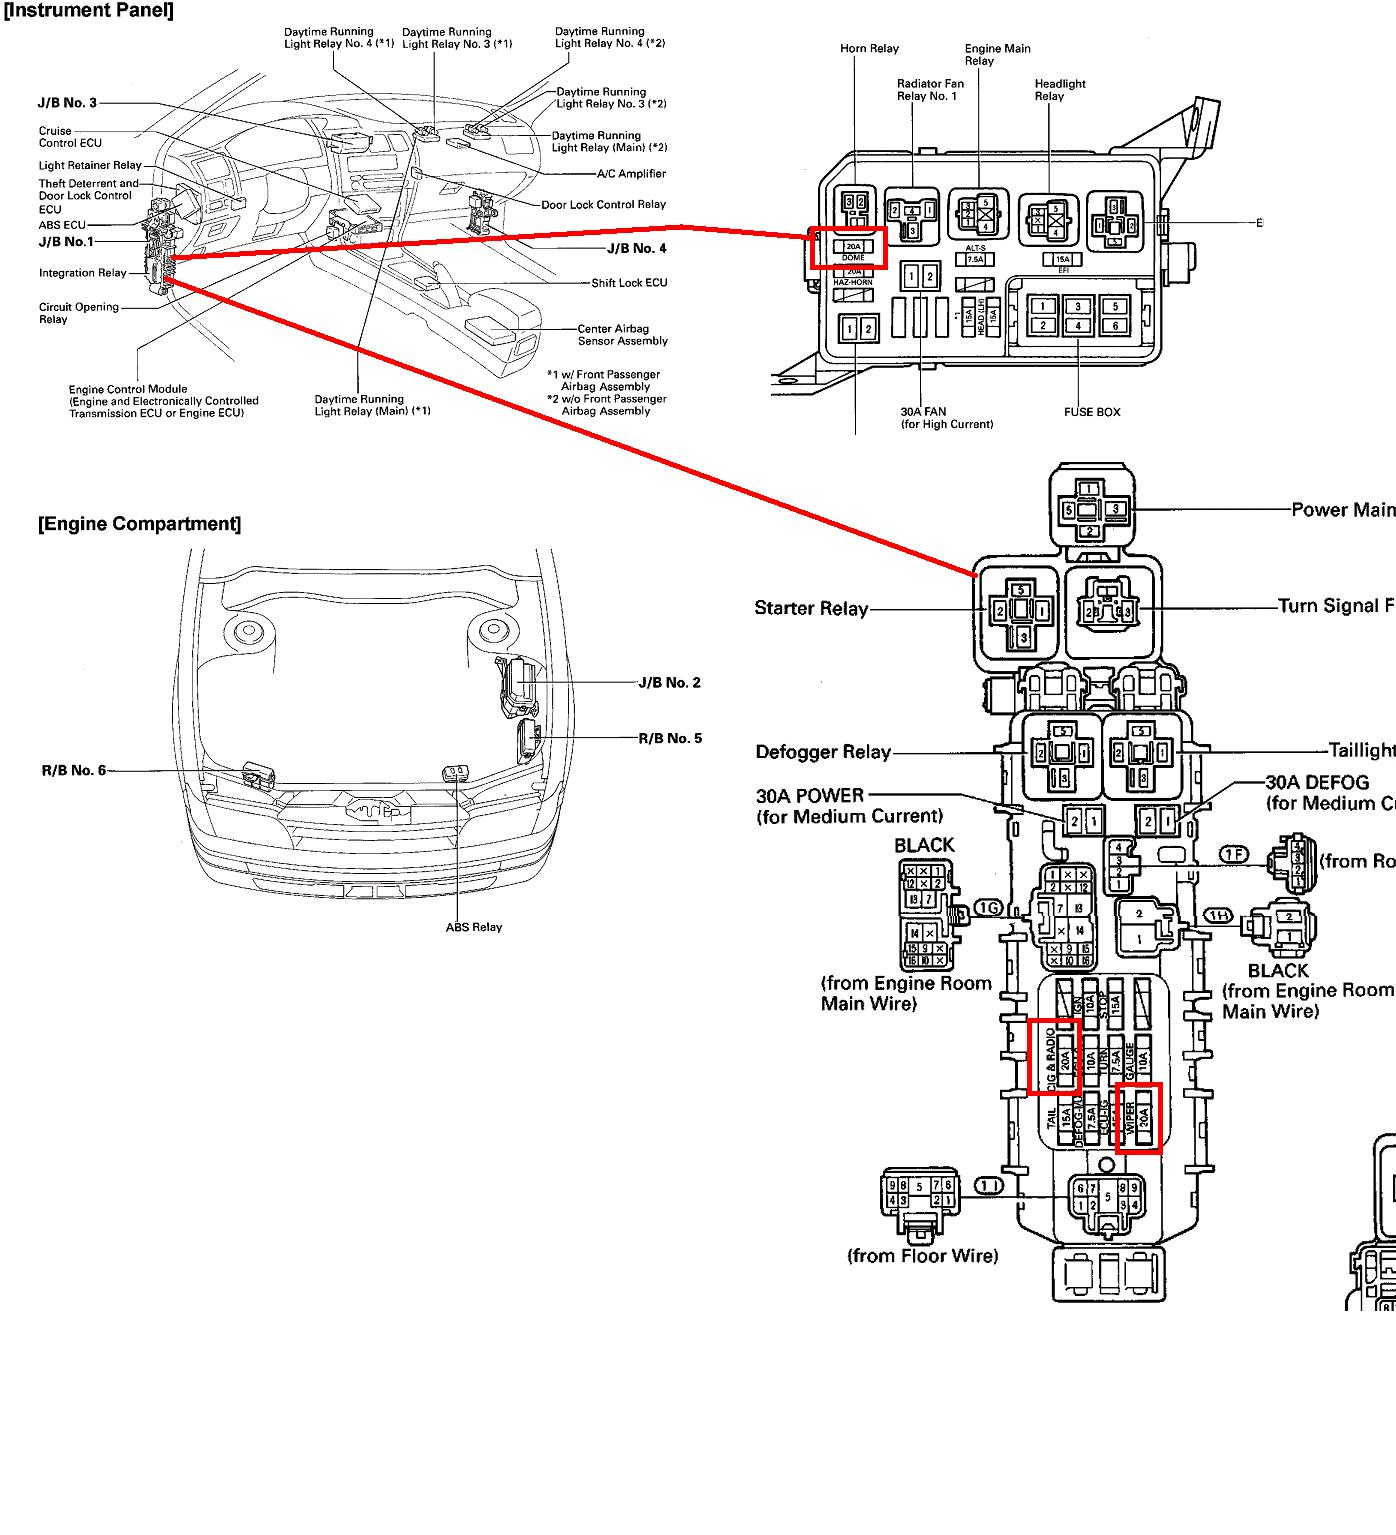 06 corolla fuse diagram daily update wiring diagram 1994 Toyota Tercel Fuse Diagram